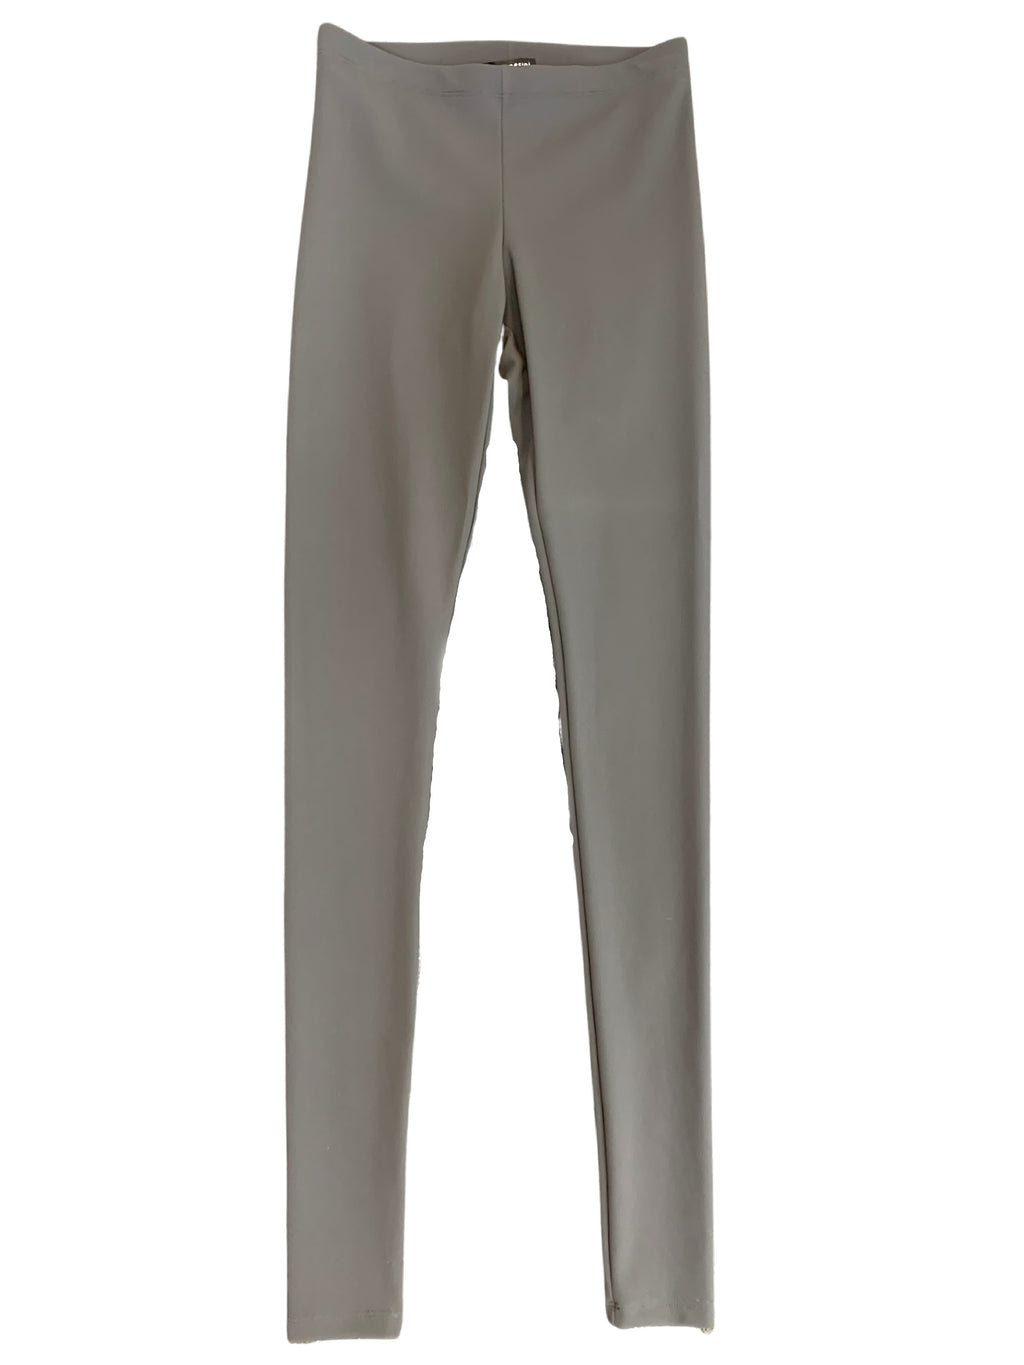 Sarah Pacini Grey Long Legging - Chic Thrills Boutique